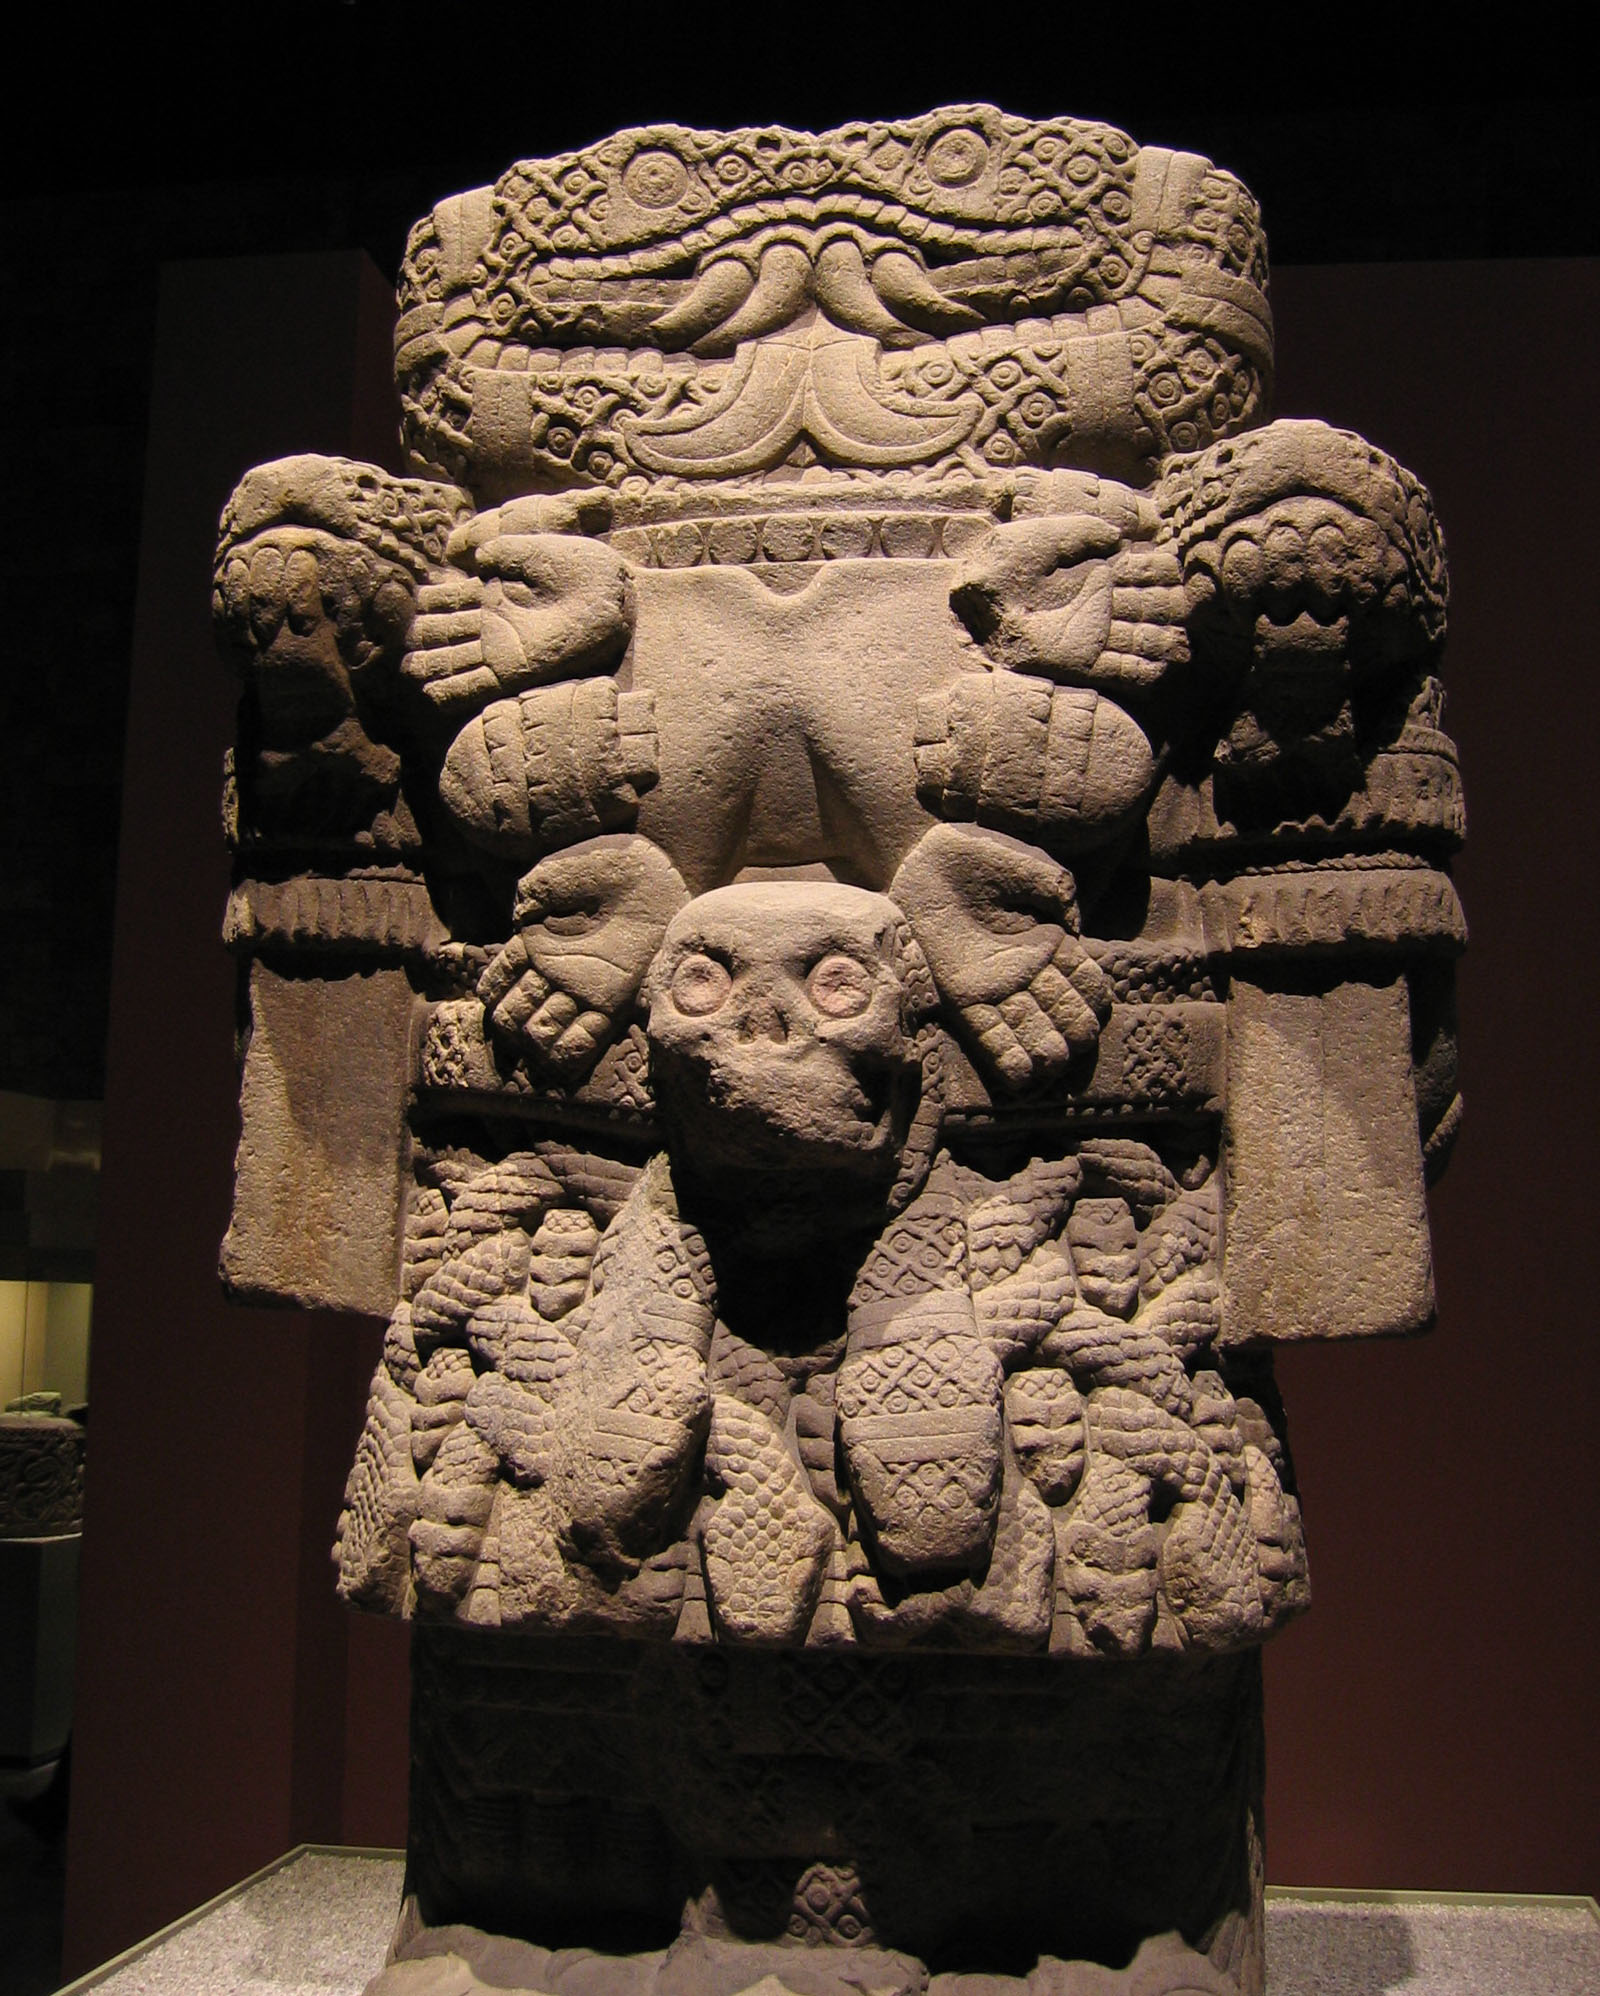 File:Aztec statue of Coatlicue, the earth goddess.jpg ...